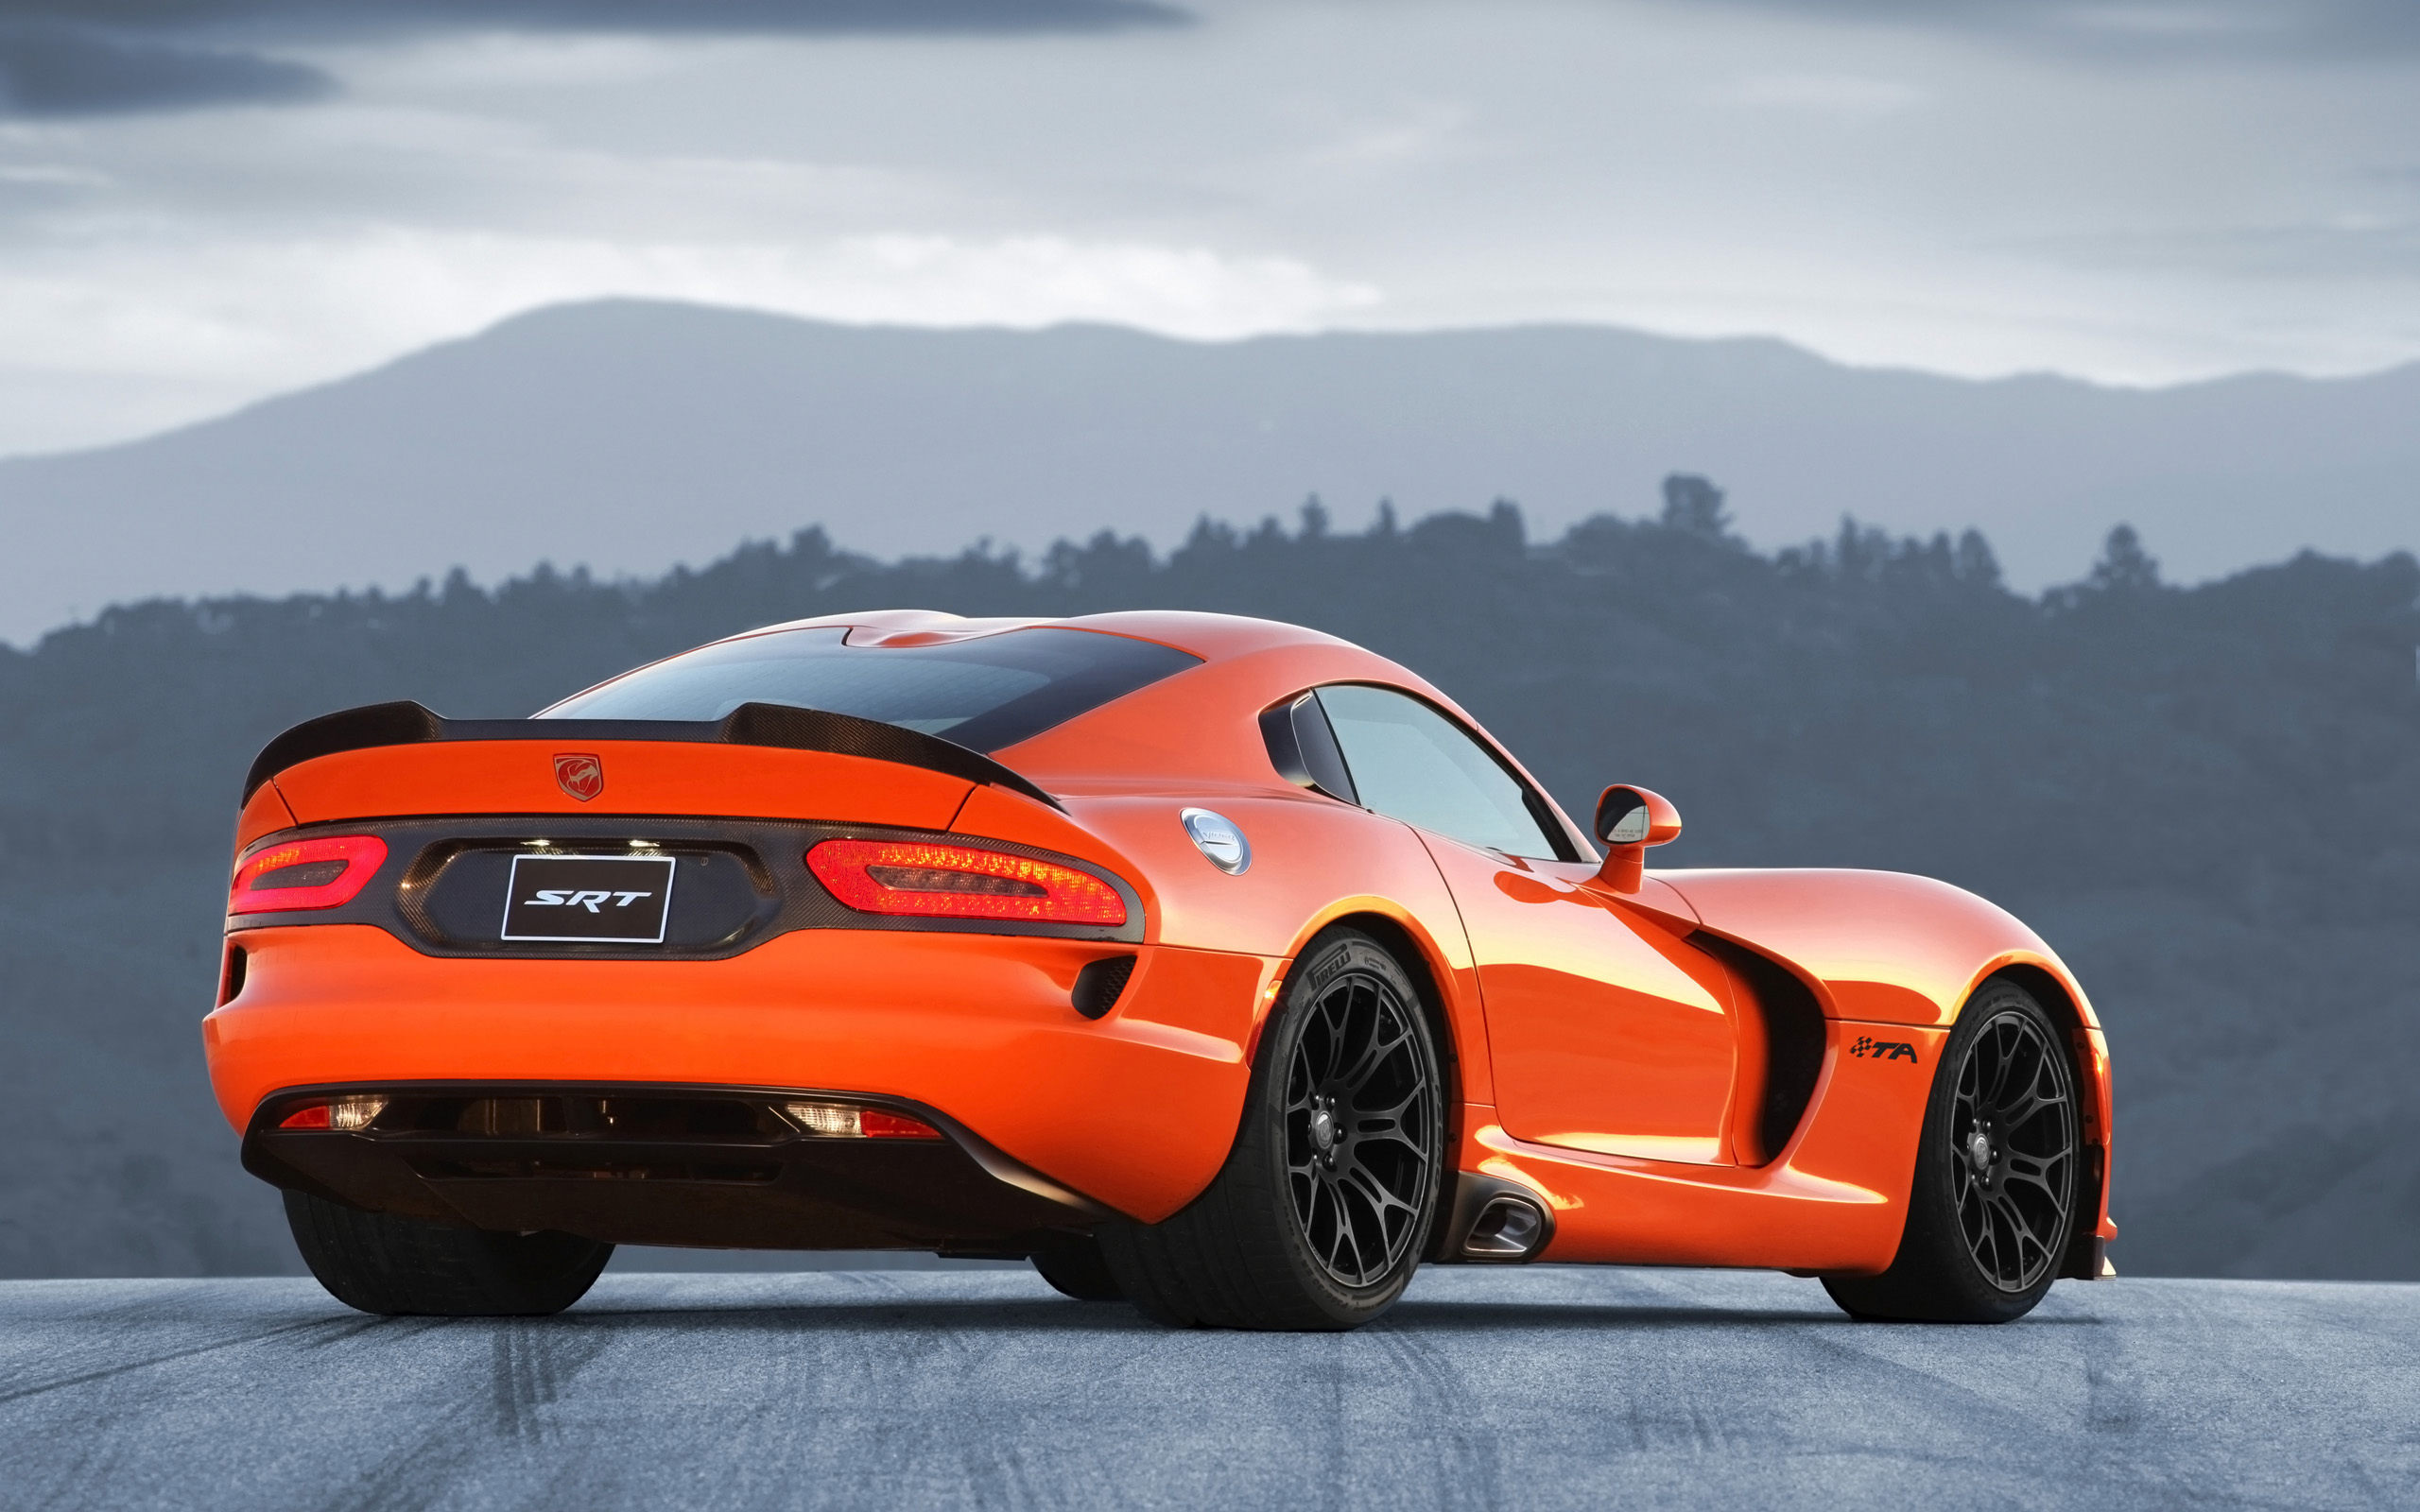 2014 Srt Viper Ta Wallpaper Hd Car Wallpapers